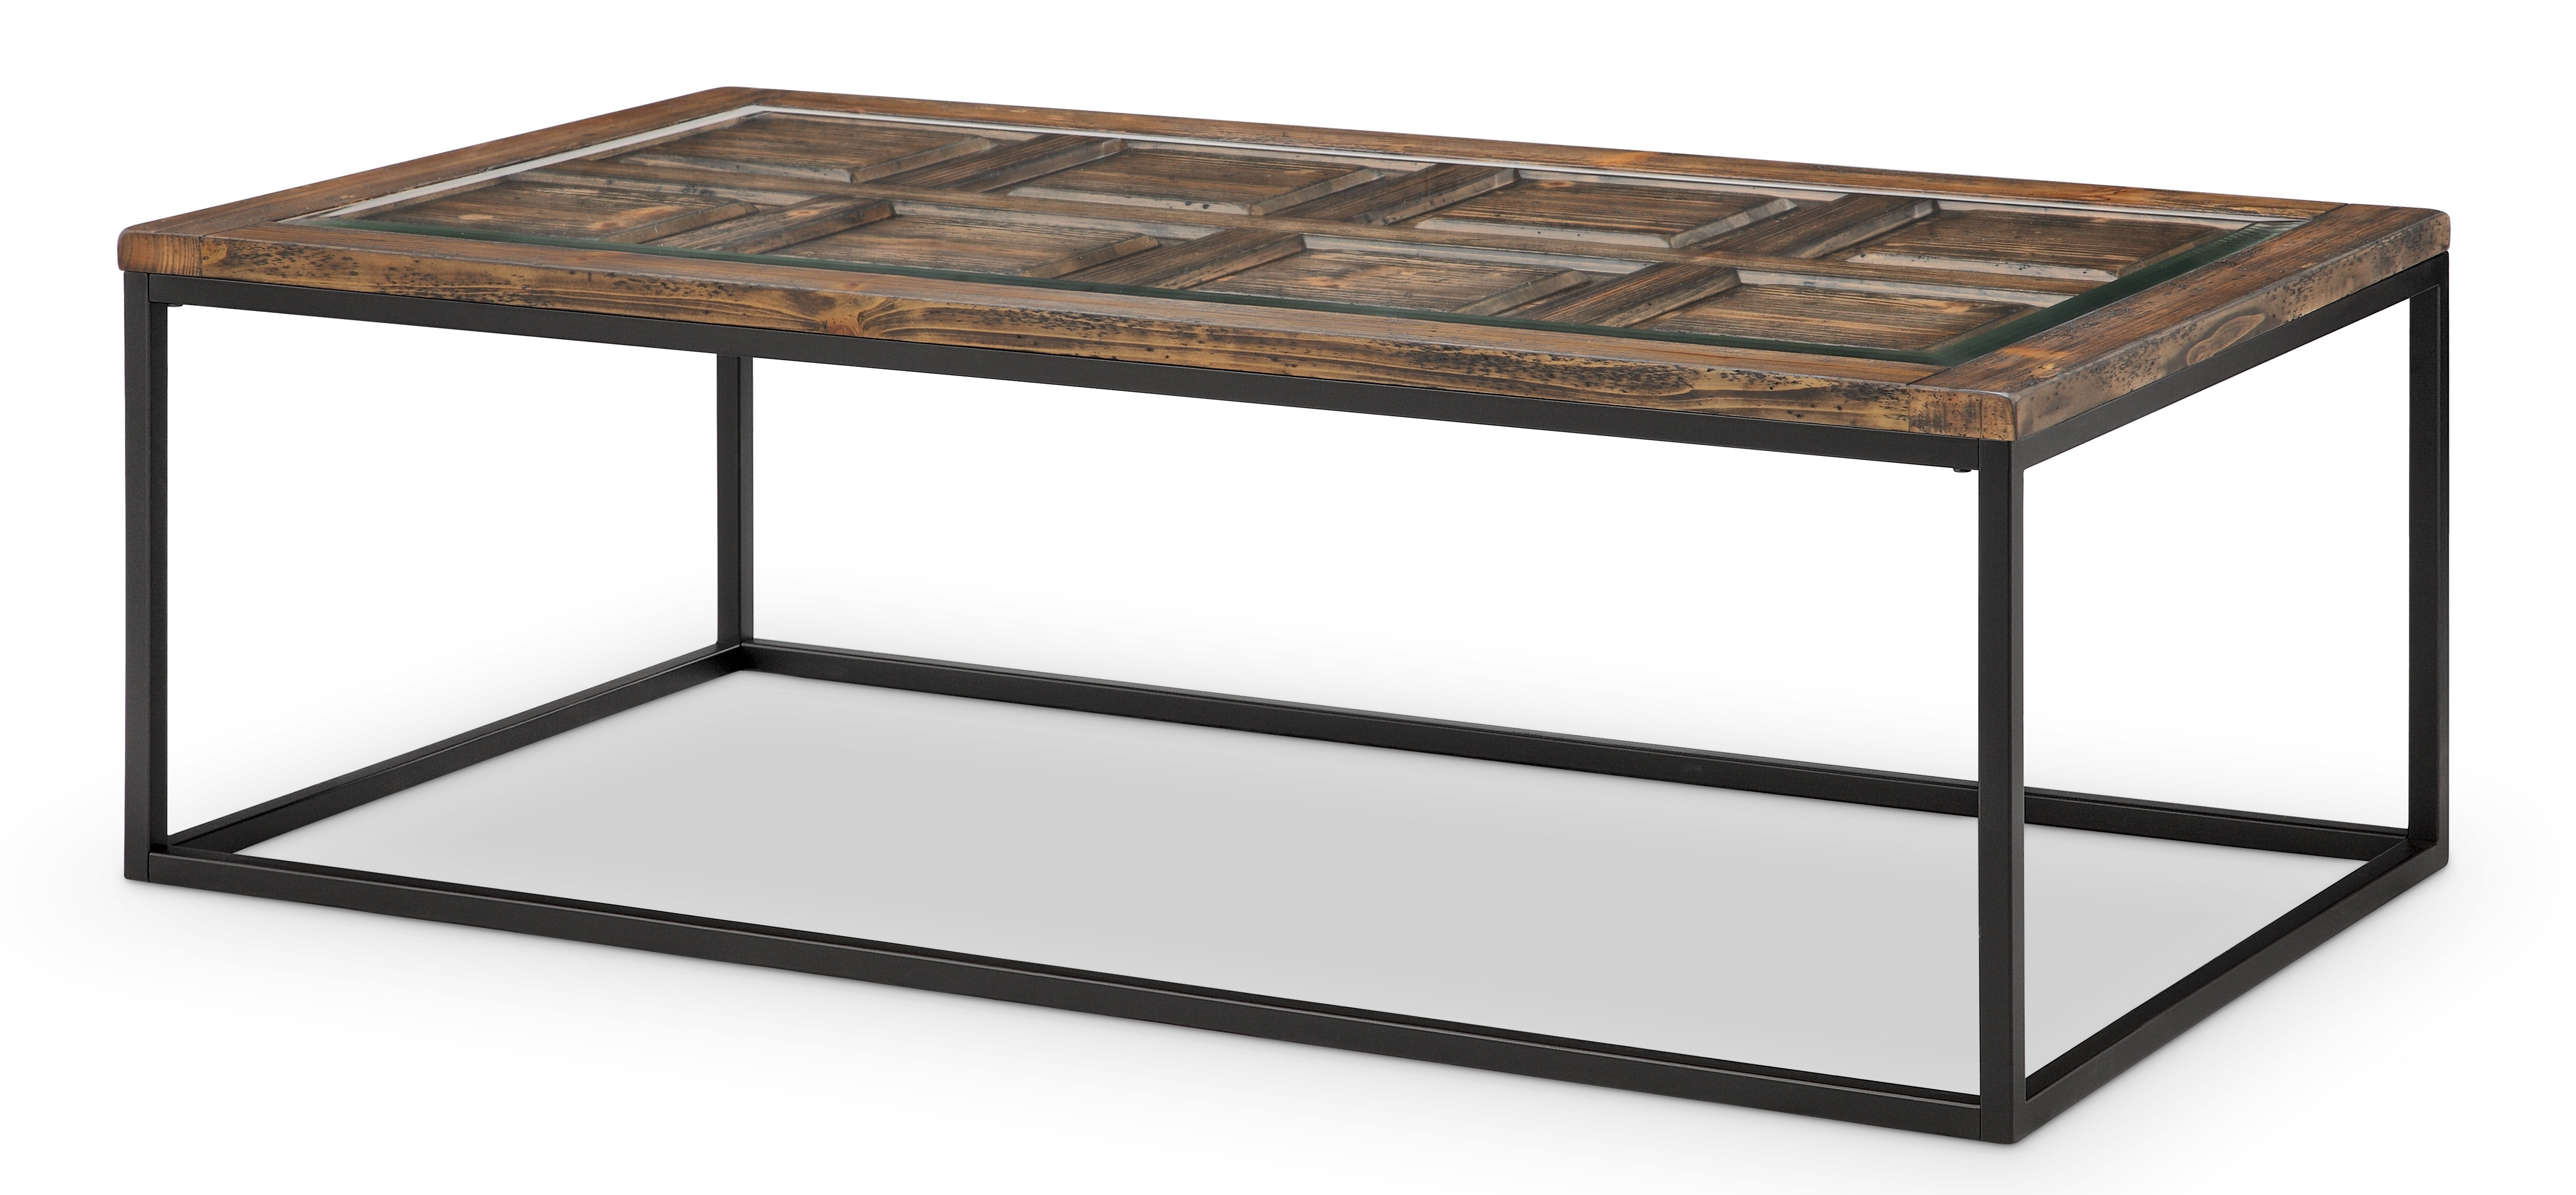 Most Recent Rectangular Coffee Tables With Brass Legs For Gracie Oaks Ajit Rectangular Coffee Table & Reviews (View 12 of 20)